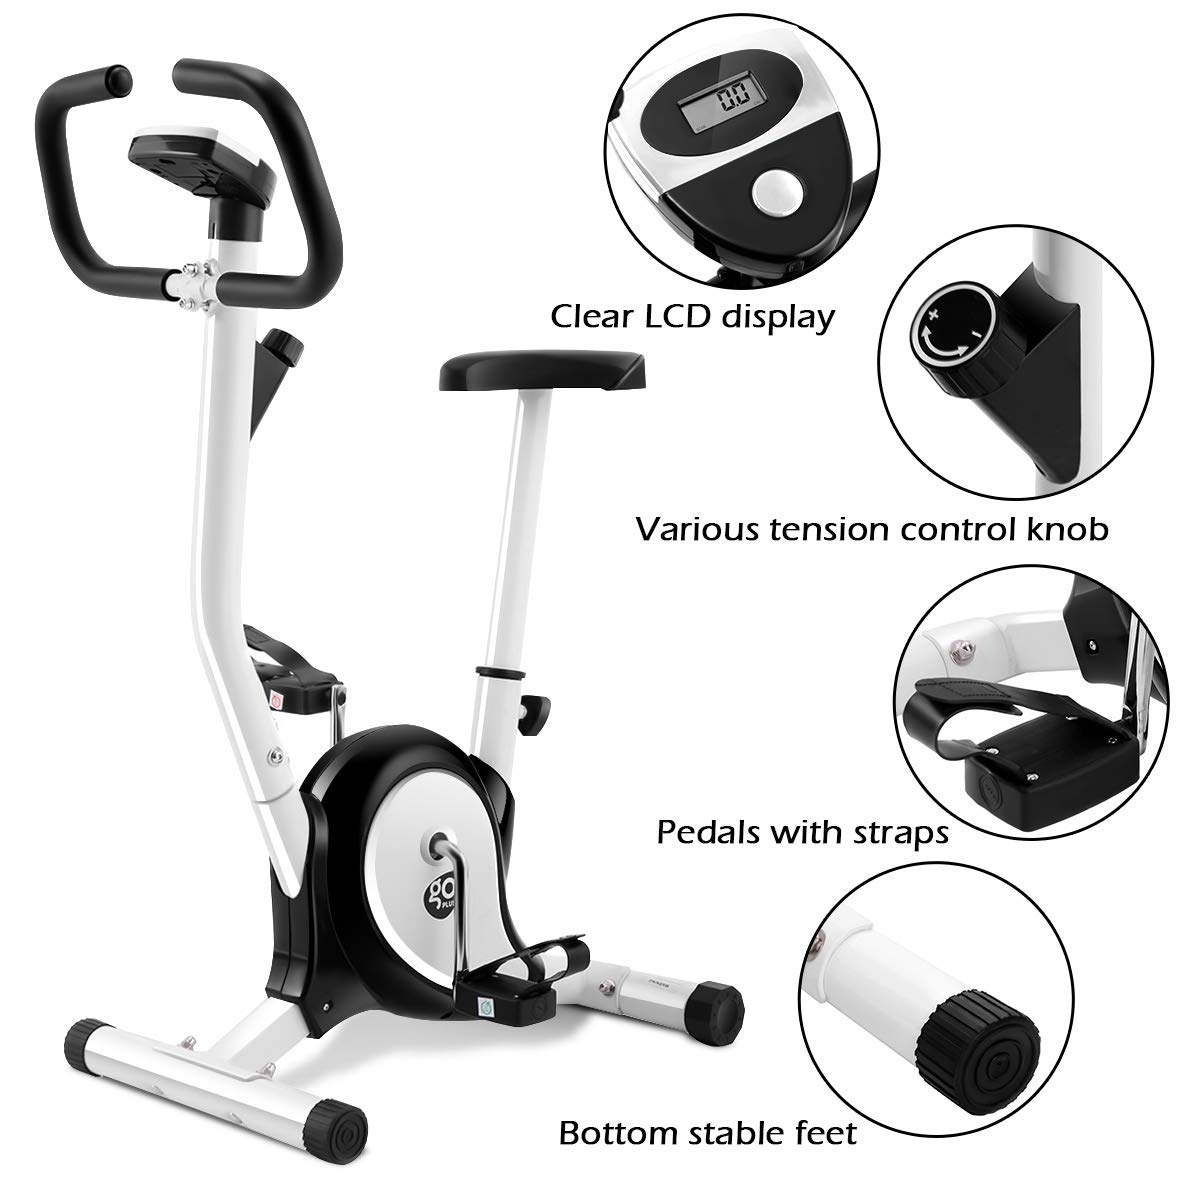 Goplus Upright Exercise Bike Magnetic Stationary Cycling Fitness Cardio Aerobic Equipment (White + Black)